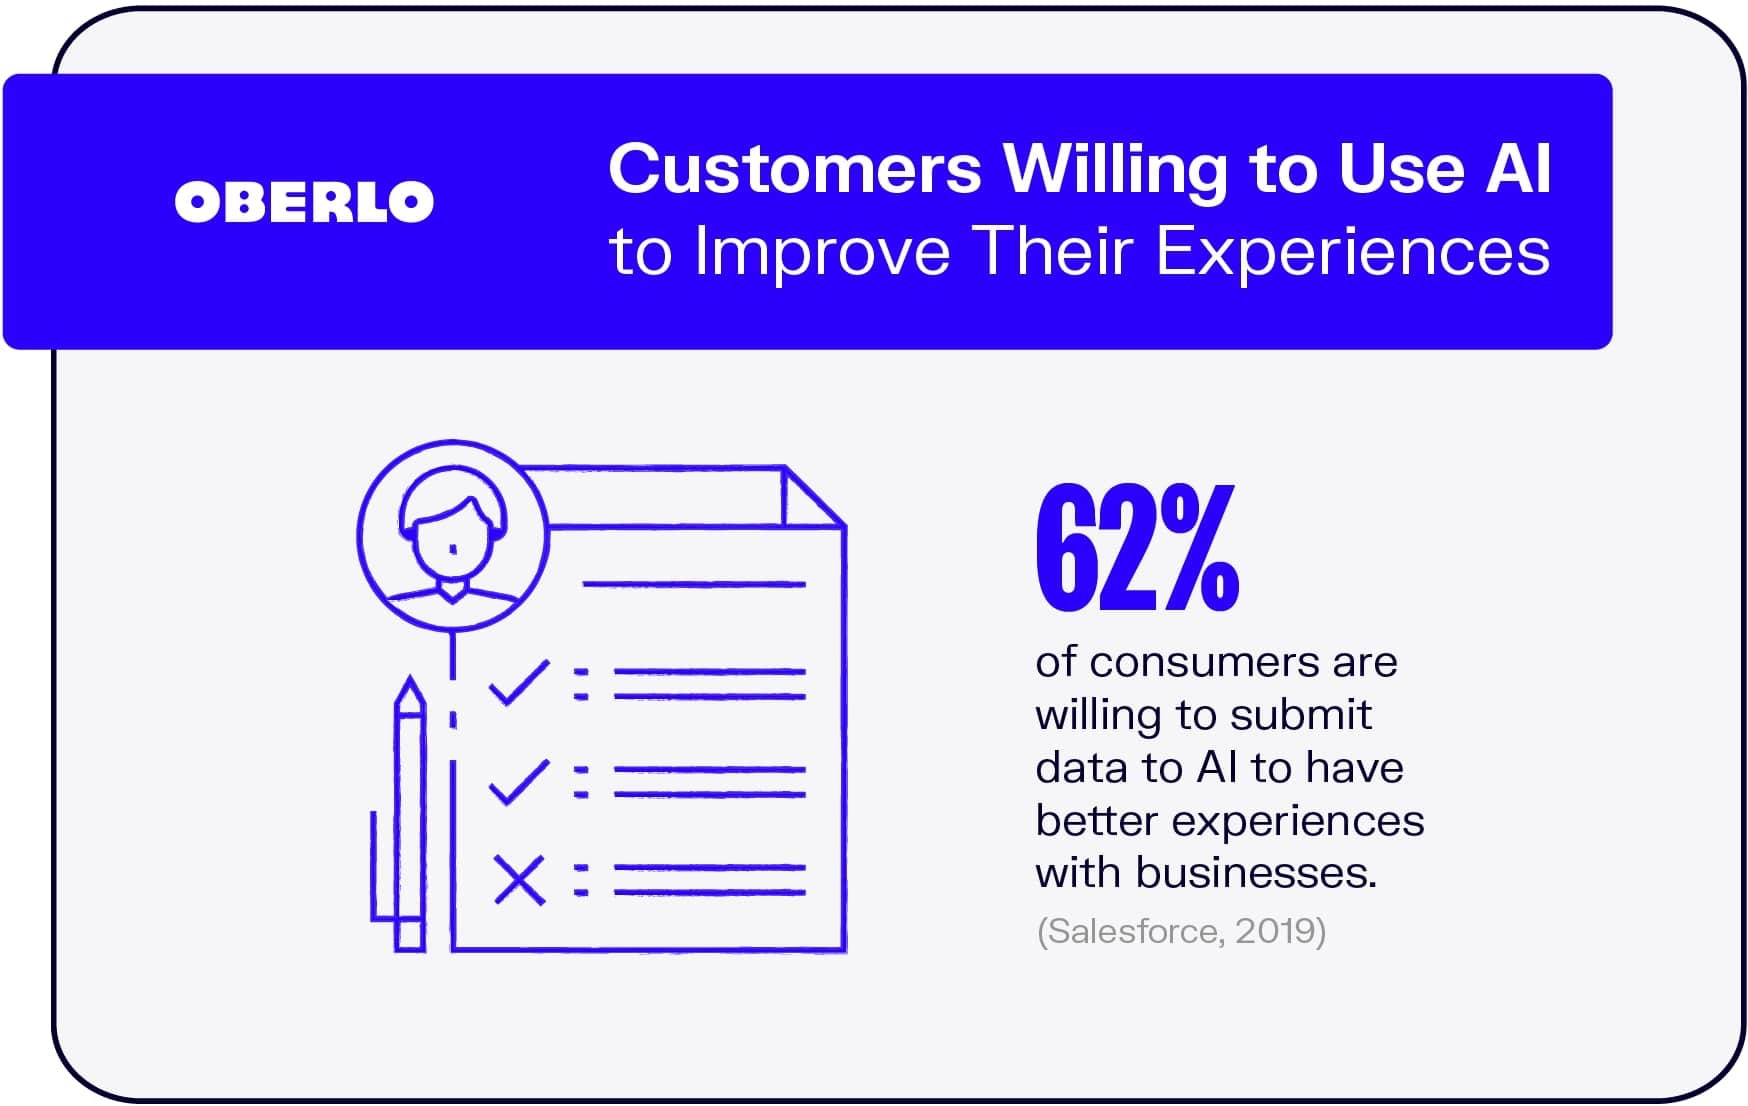 Customers Willing to Use AI to Improve Their Experiences